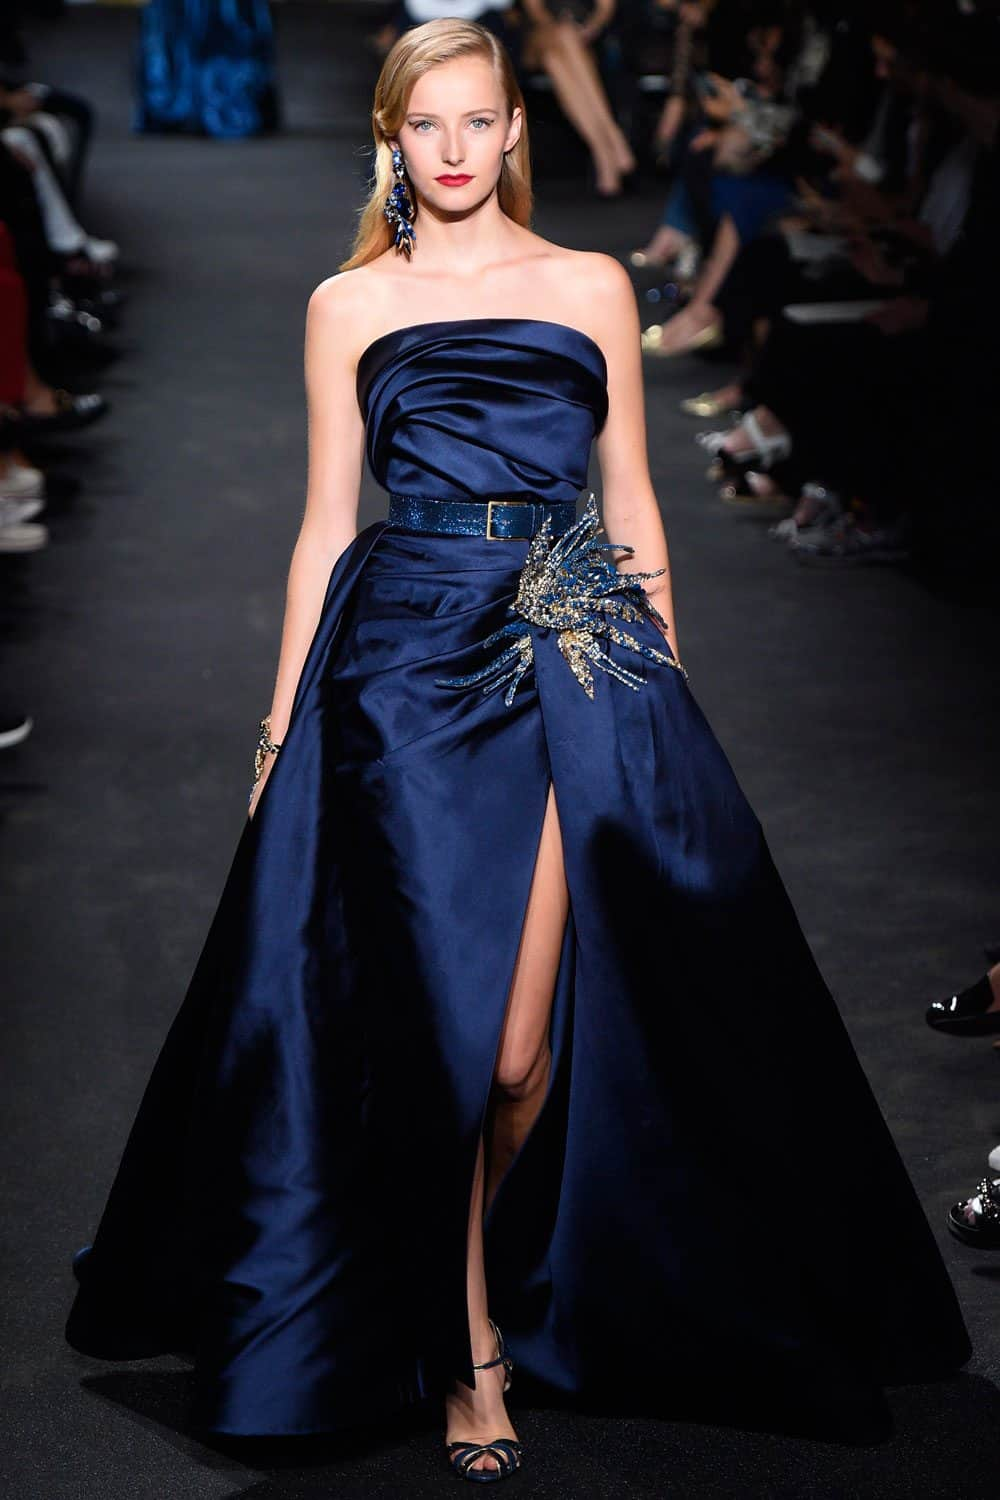 elie-saab-Photo-Kim-Weston-Arnold.-Indigital.tv34